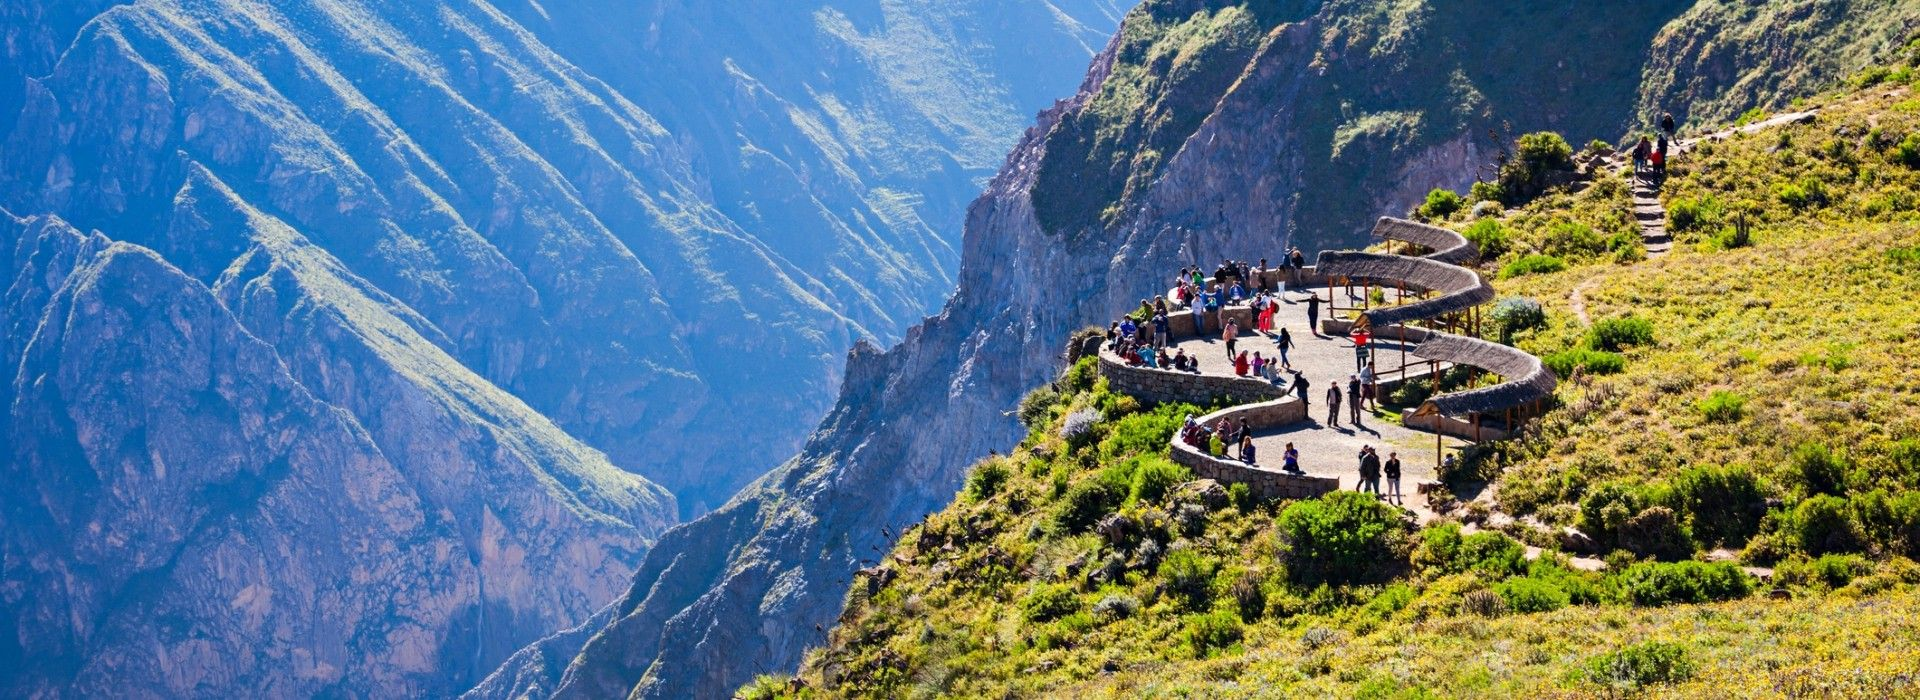 Tours and holidays to Colca Canyon will be filled with natural wonders